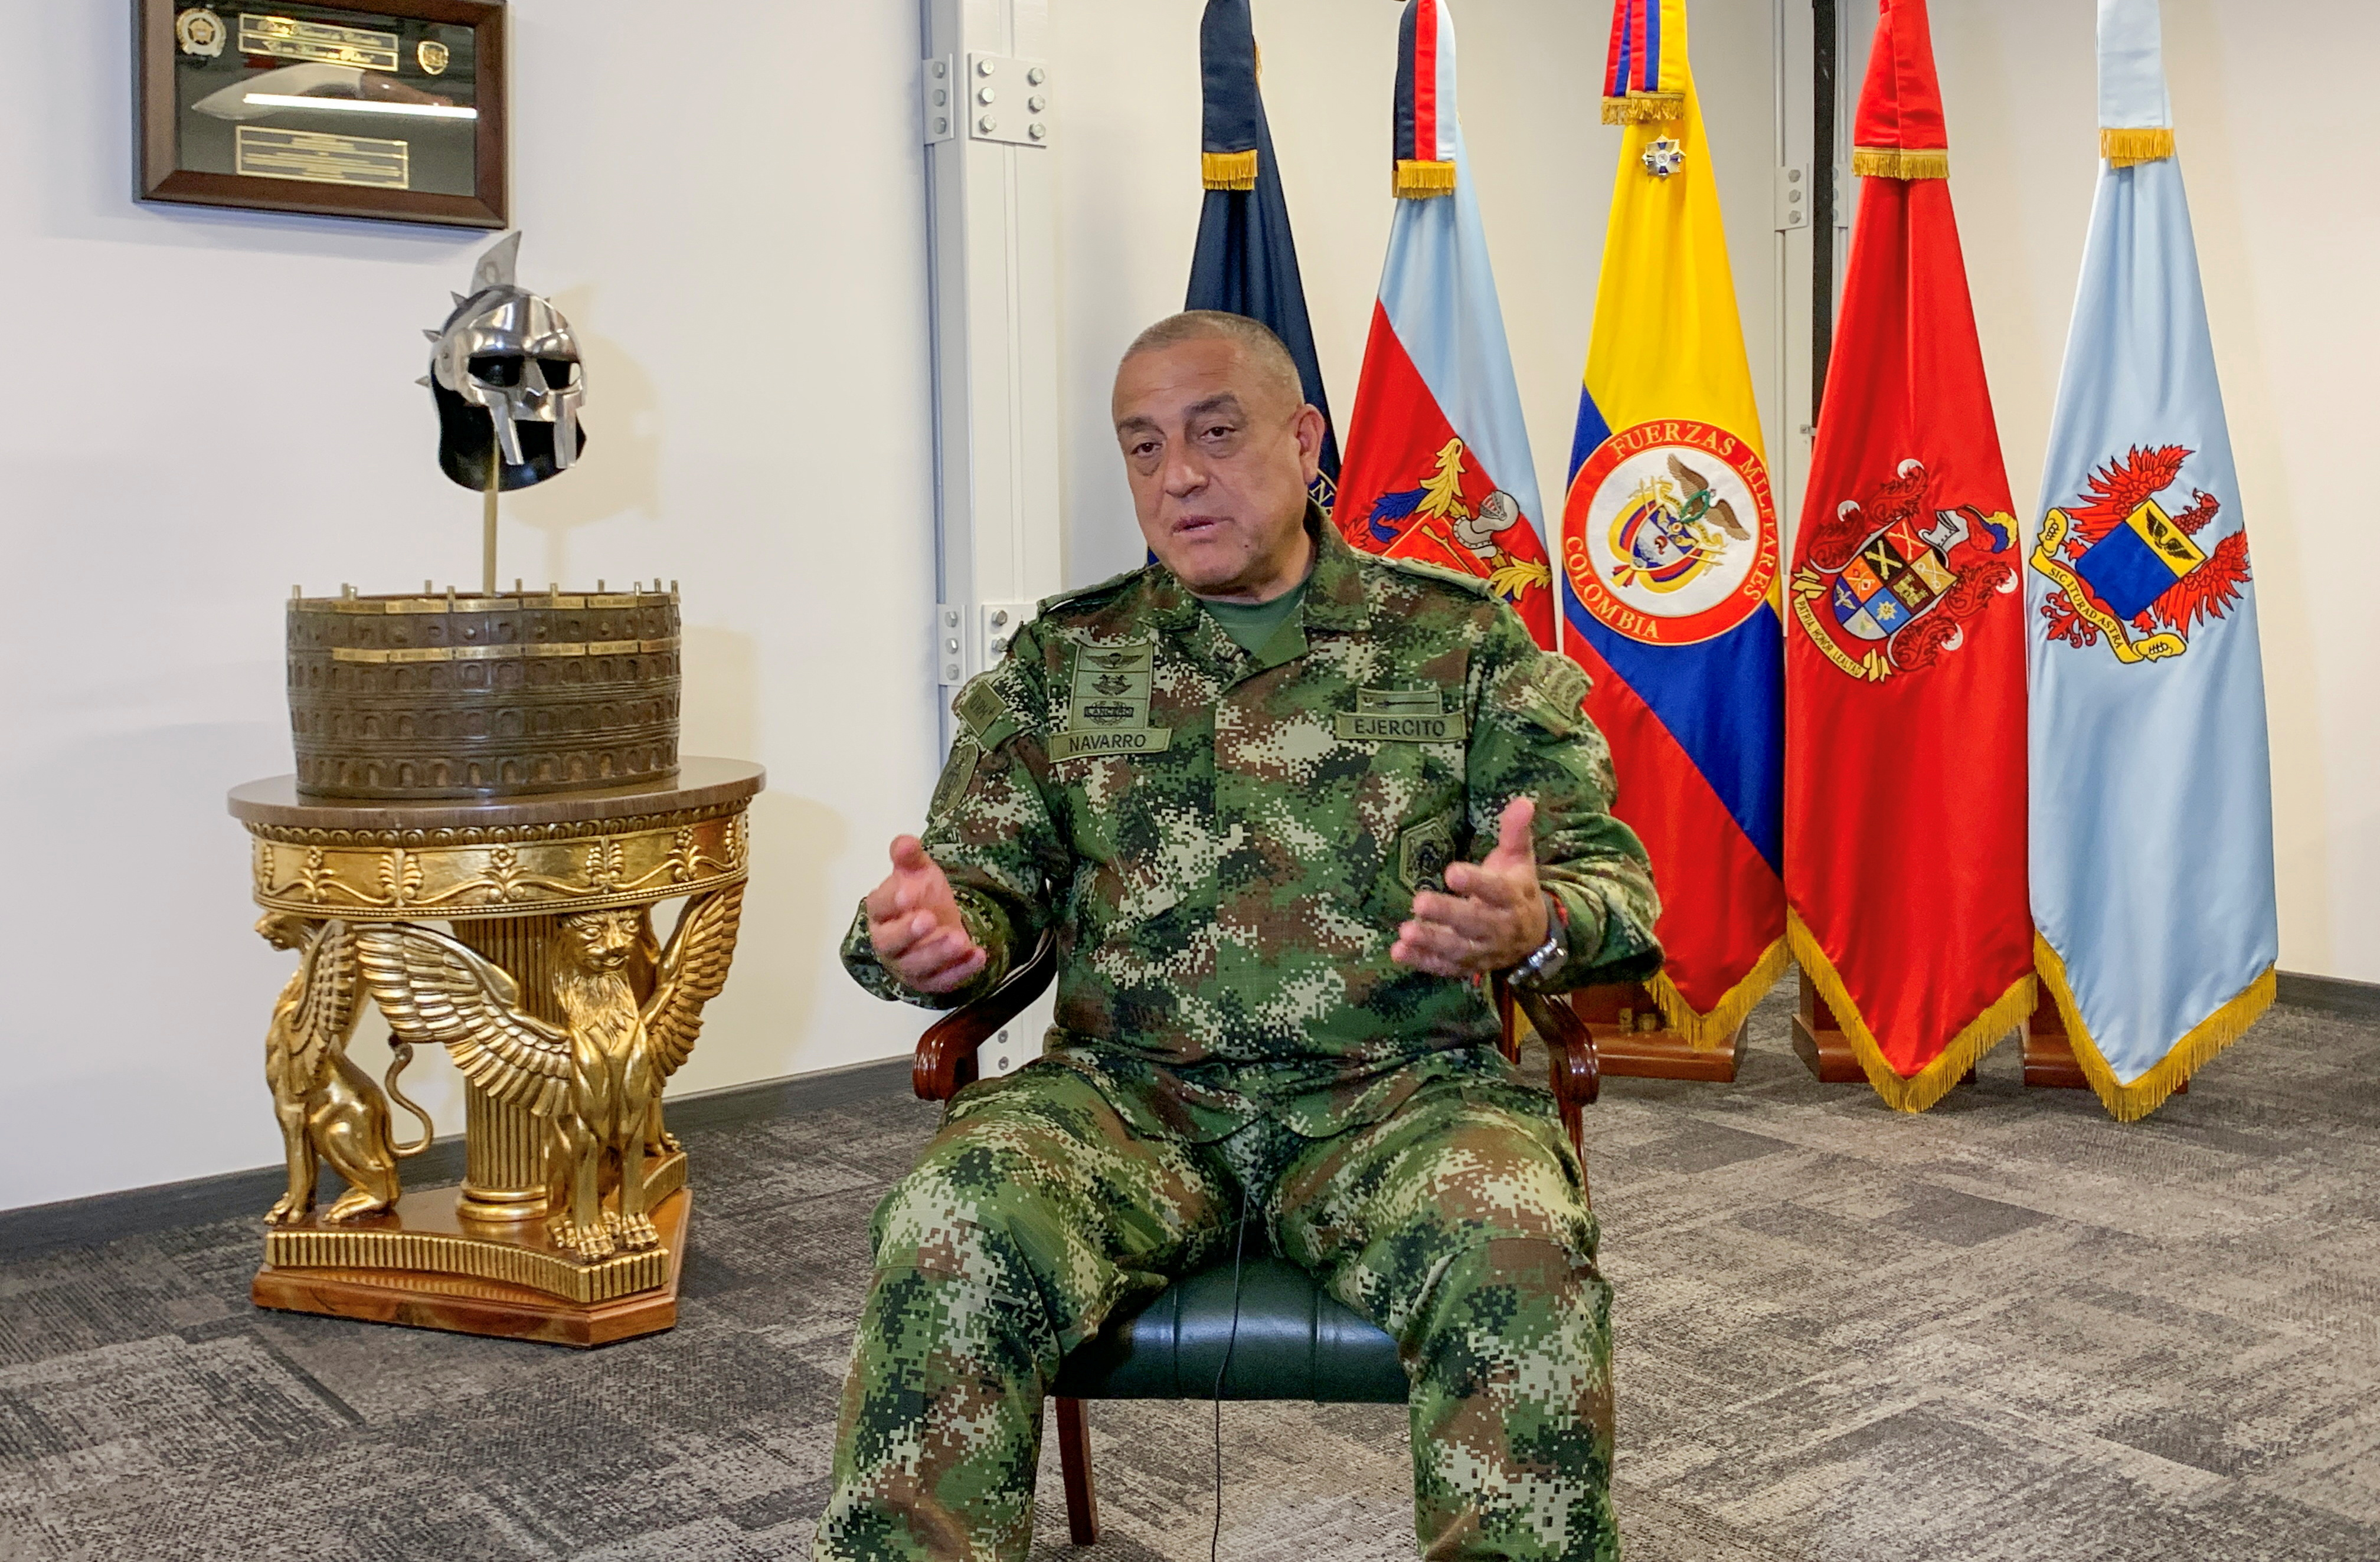 EXCLUSIVE Some 1900 Colombian guerrillas operating from Venezuela, says Colombia military chief